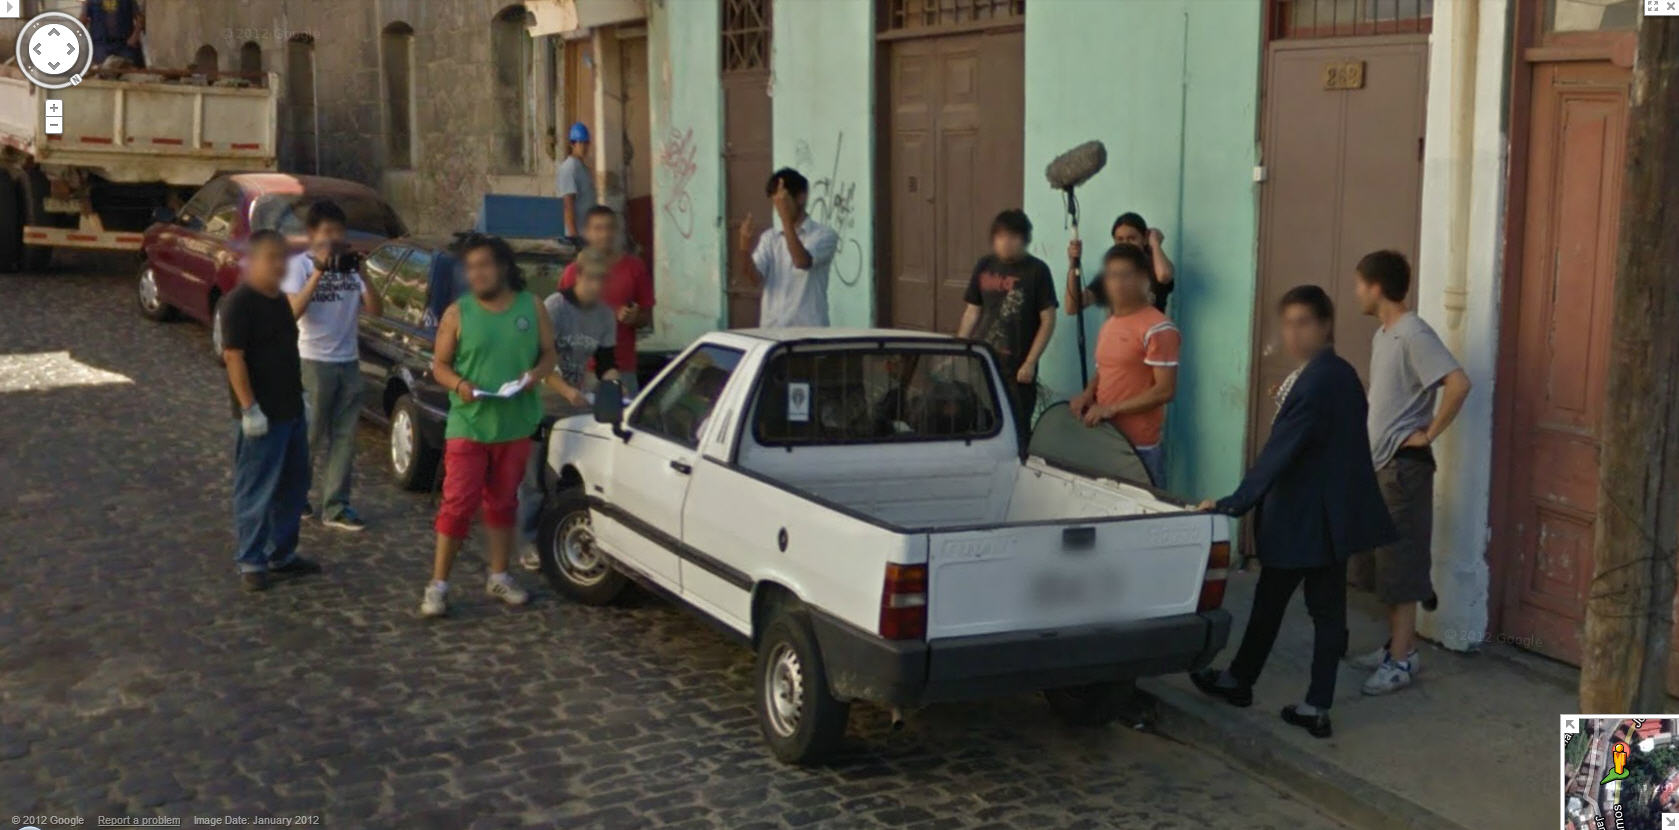 google-street-view-chile-gets-the-finger-from-a-film-crew